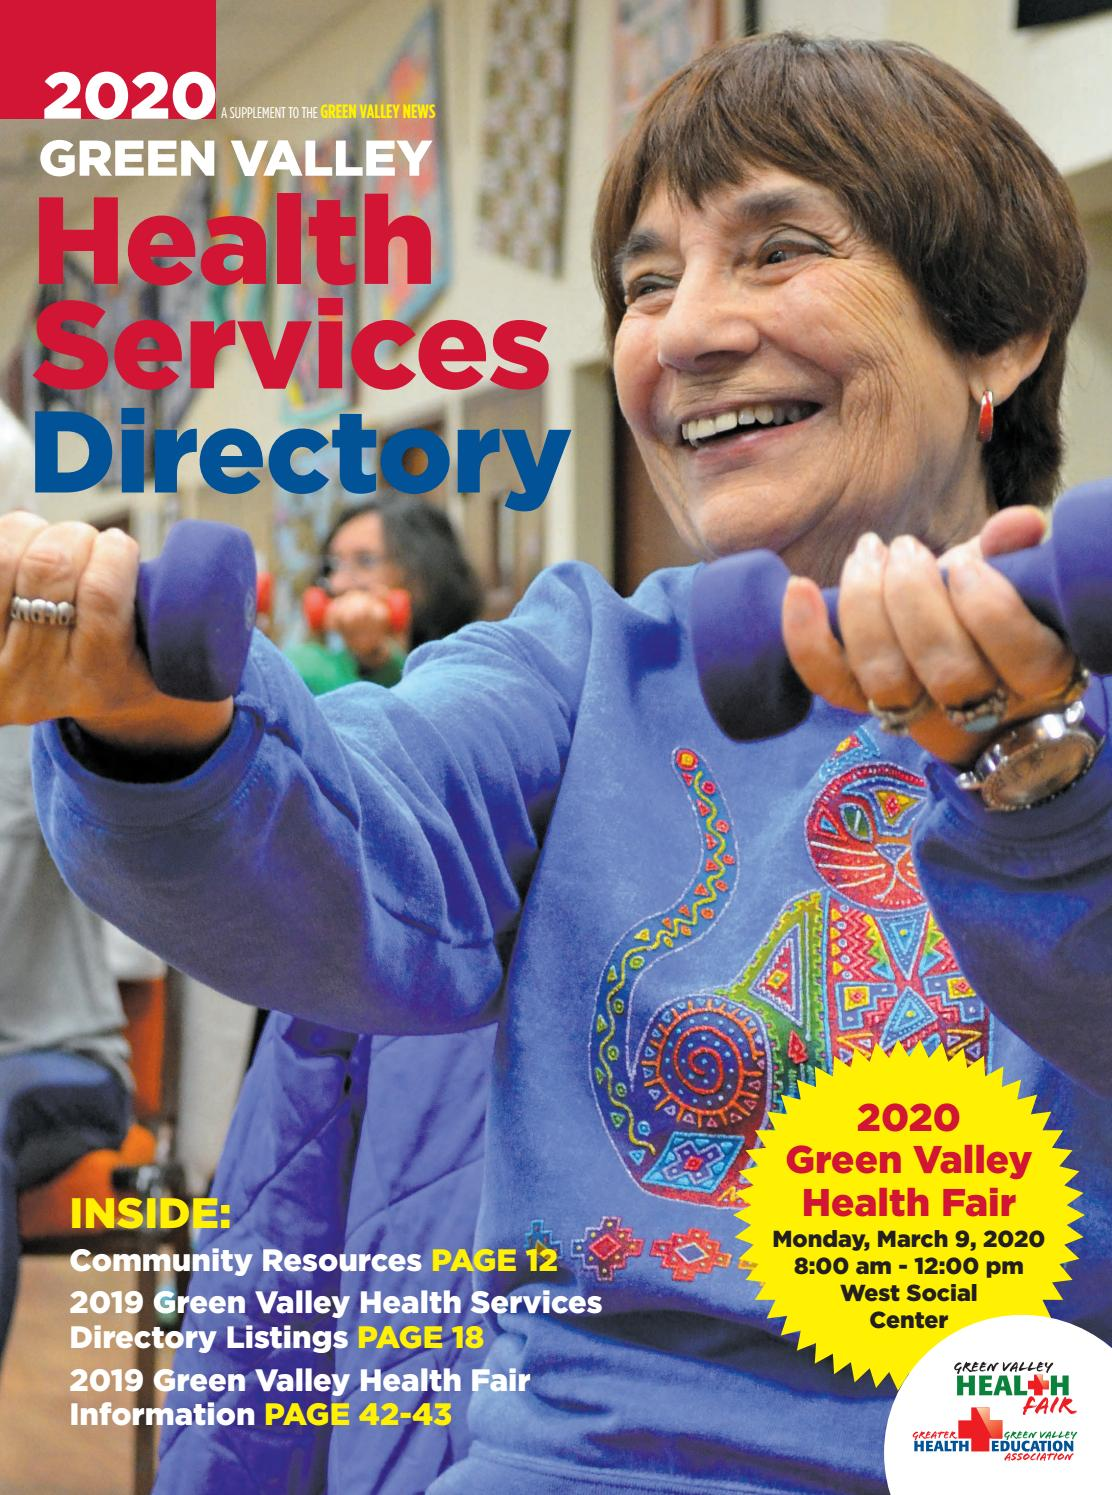 Green Valley Health Services Directory By Wick Communications Issuu